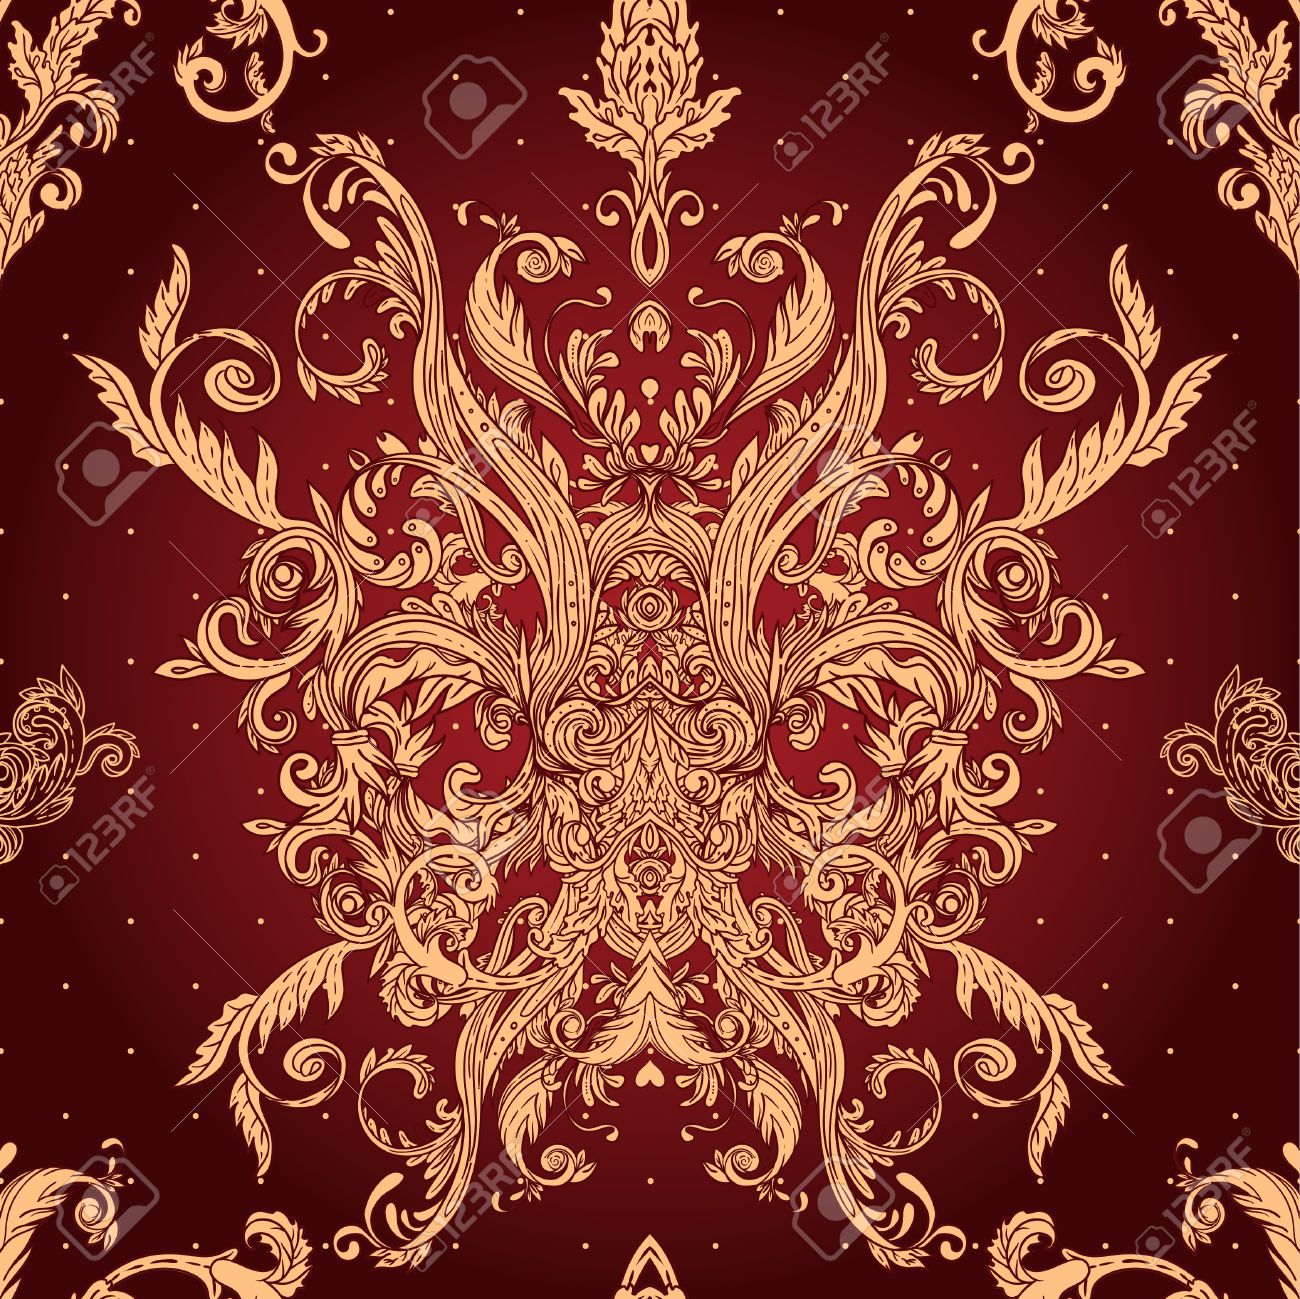 Vintage background ornate baroque pattern vector illustration stock - Vintage Vector Background Ornate Baroque Pattern Stock Vector 24615968